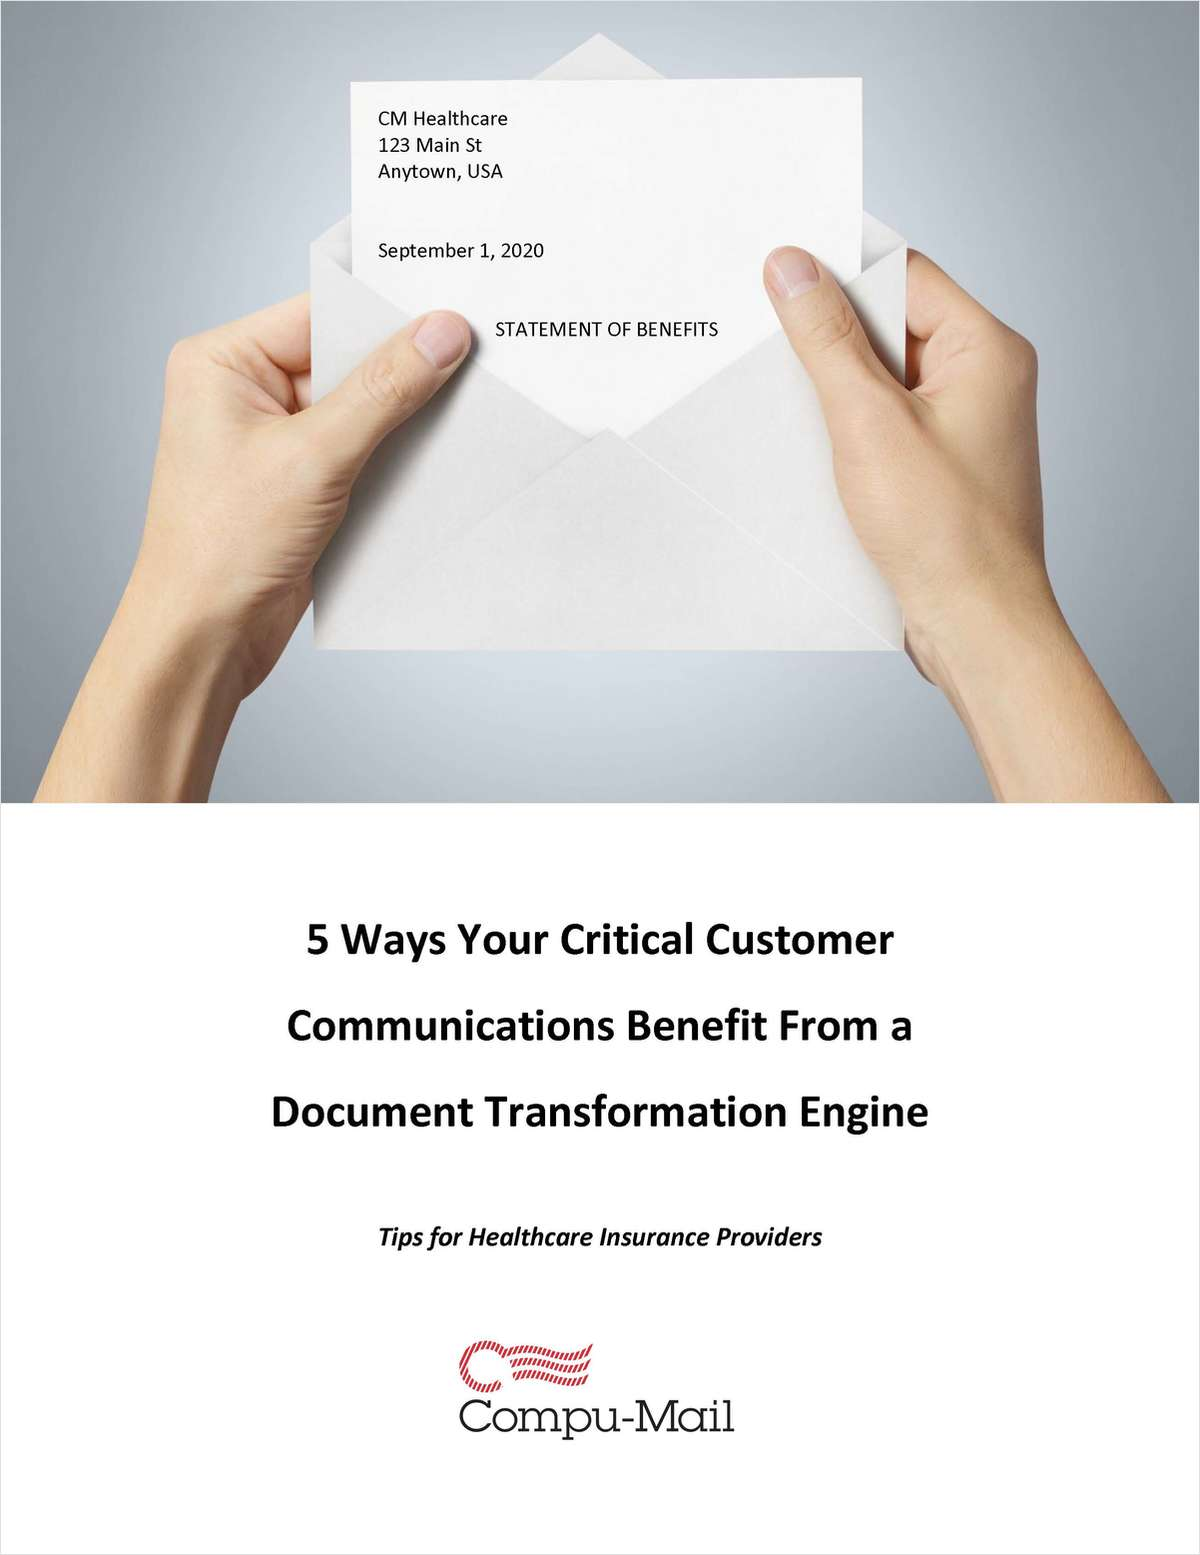 5 Ways Your Critical Customer Communications Benefit From a Document Transformation Engine